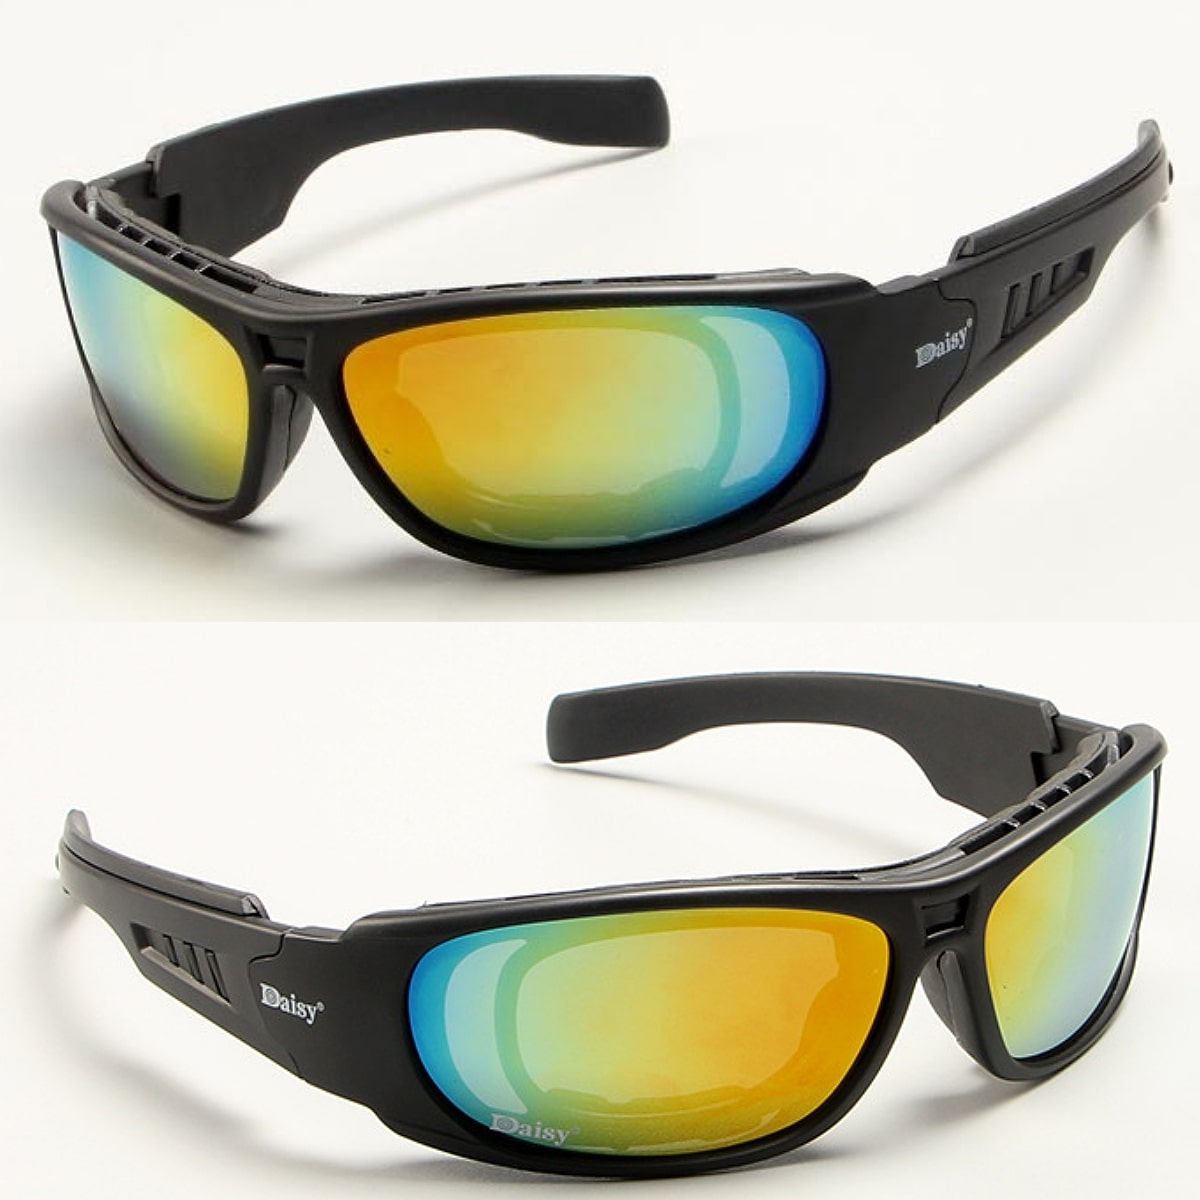 7488699f9833 auc-harley: The [Military Tactical UV 4 Lens Sunglasses/Goggles ...